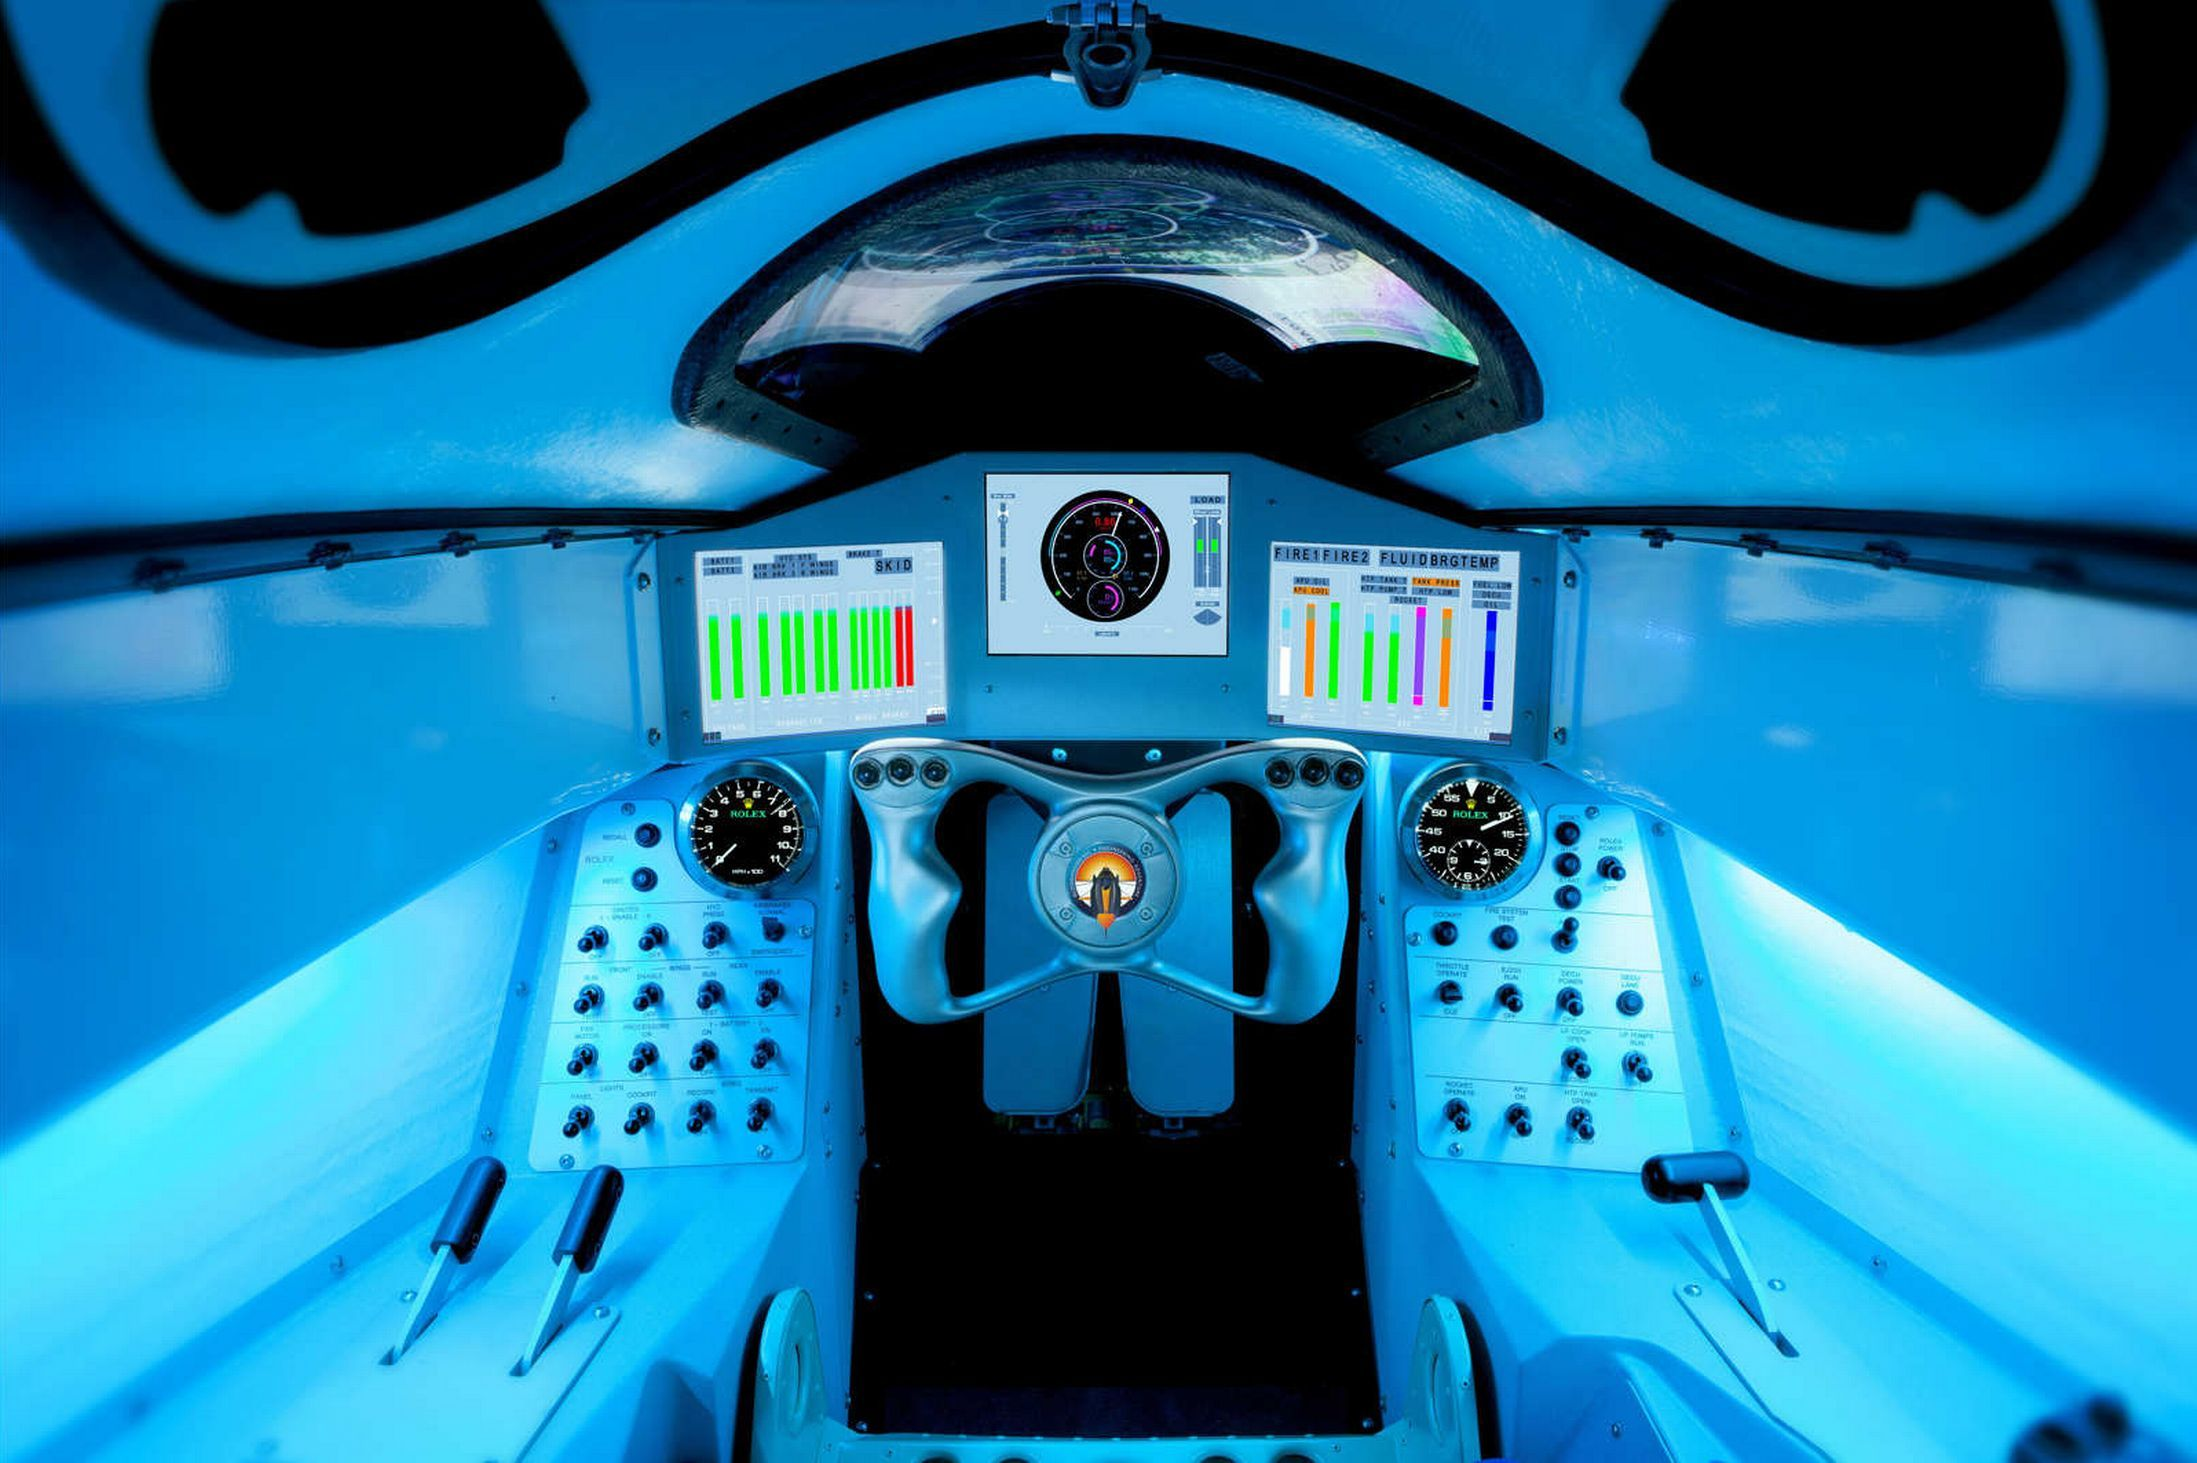 This Is The Cockpit Of The Supersonic Car That Will Reach 1000mph Cockpit Bloodhound Car In The World